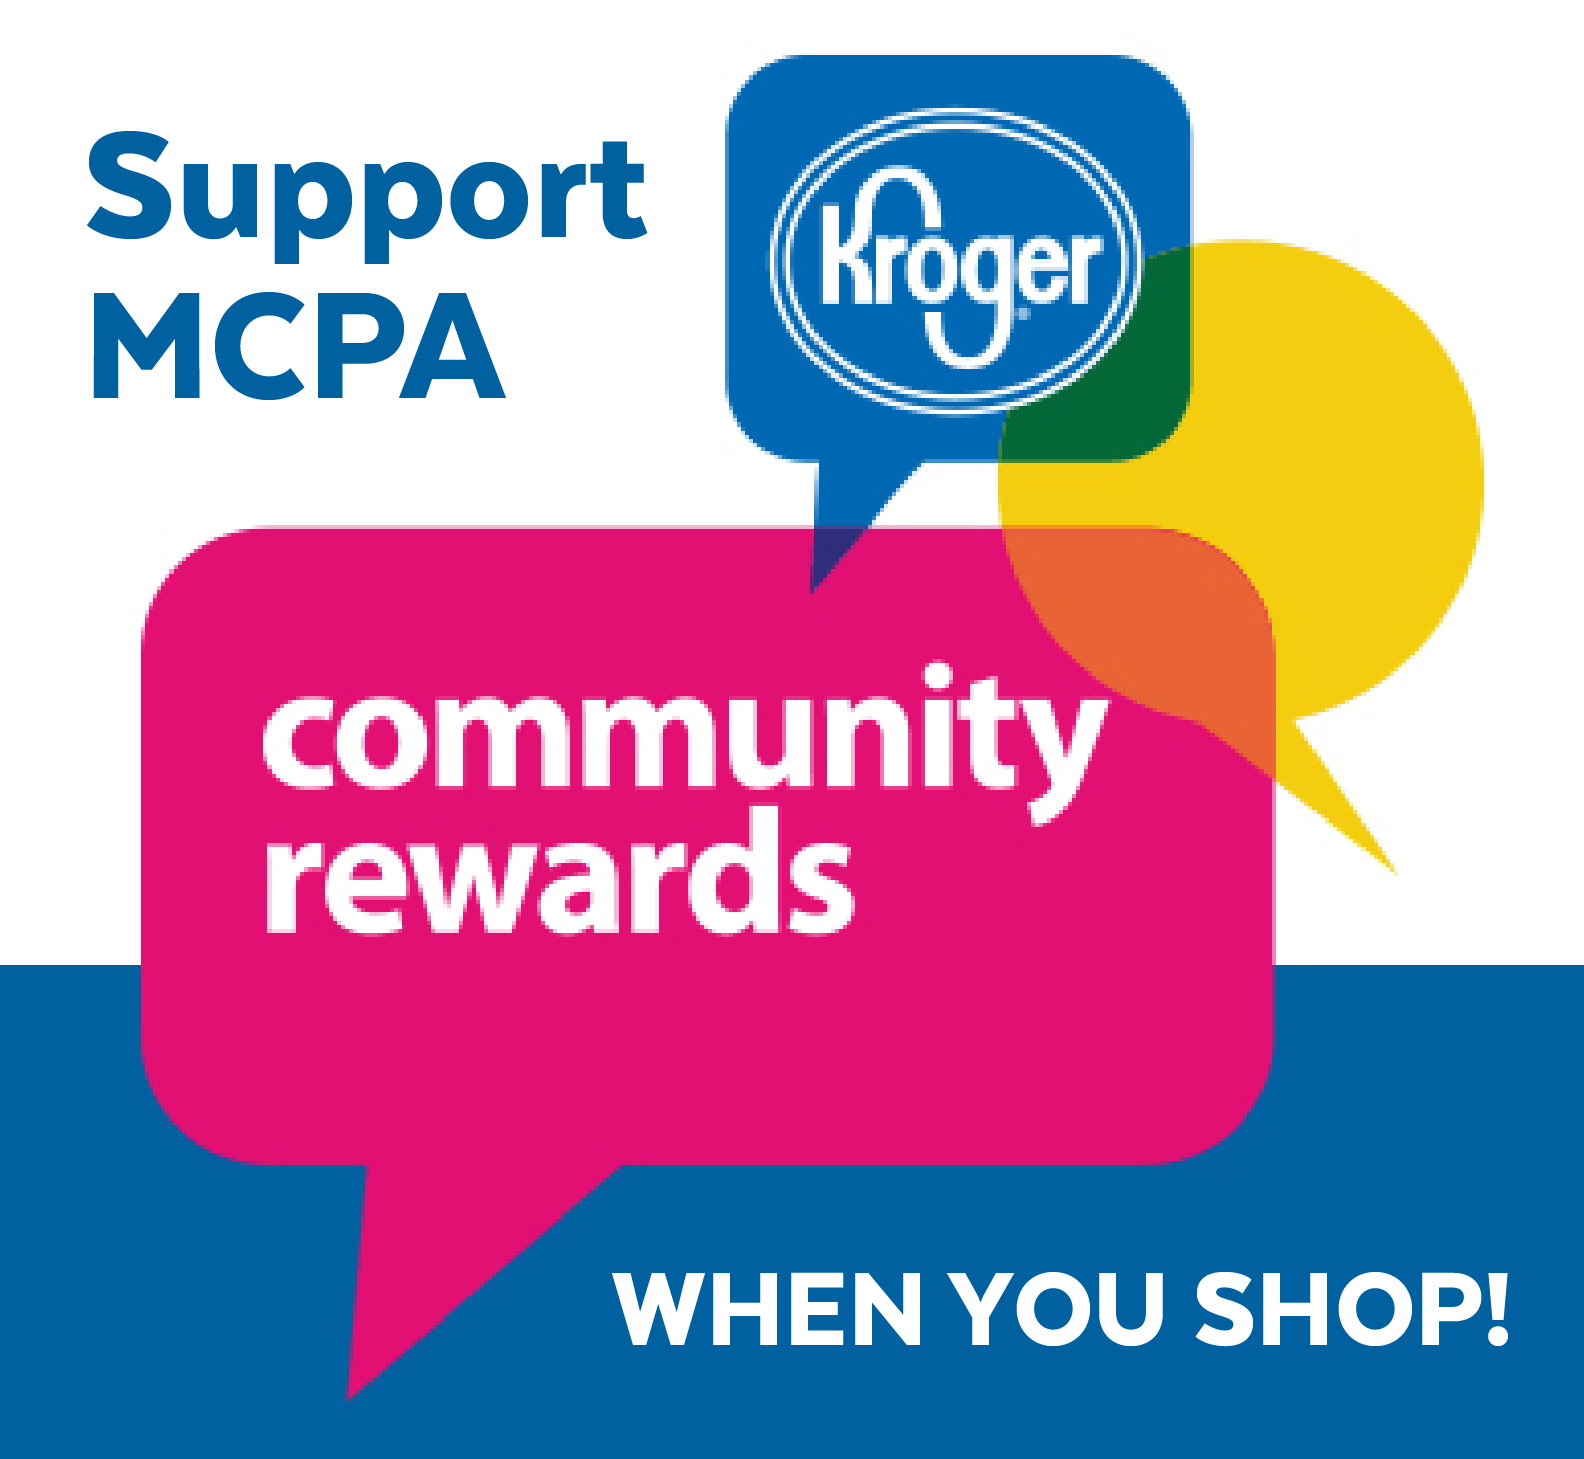 KrogerCommunityRewards_PromoSquare-02.png